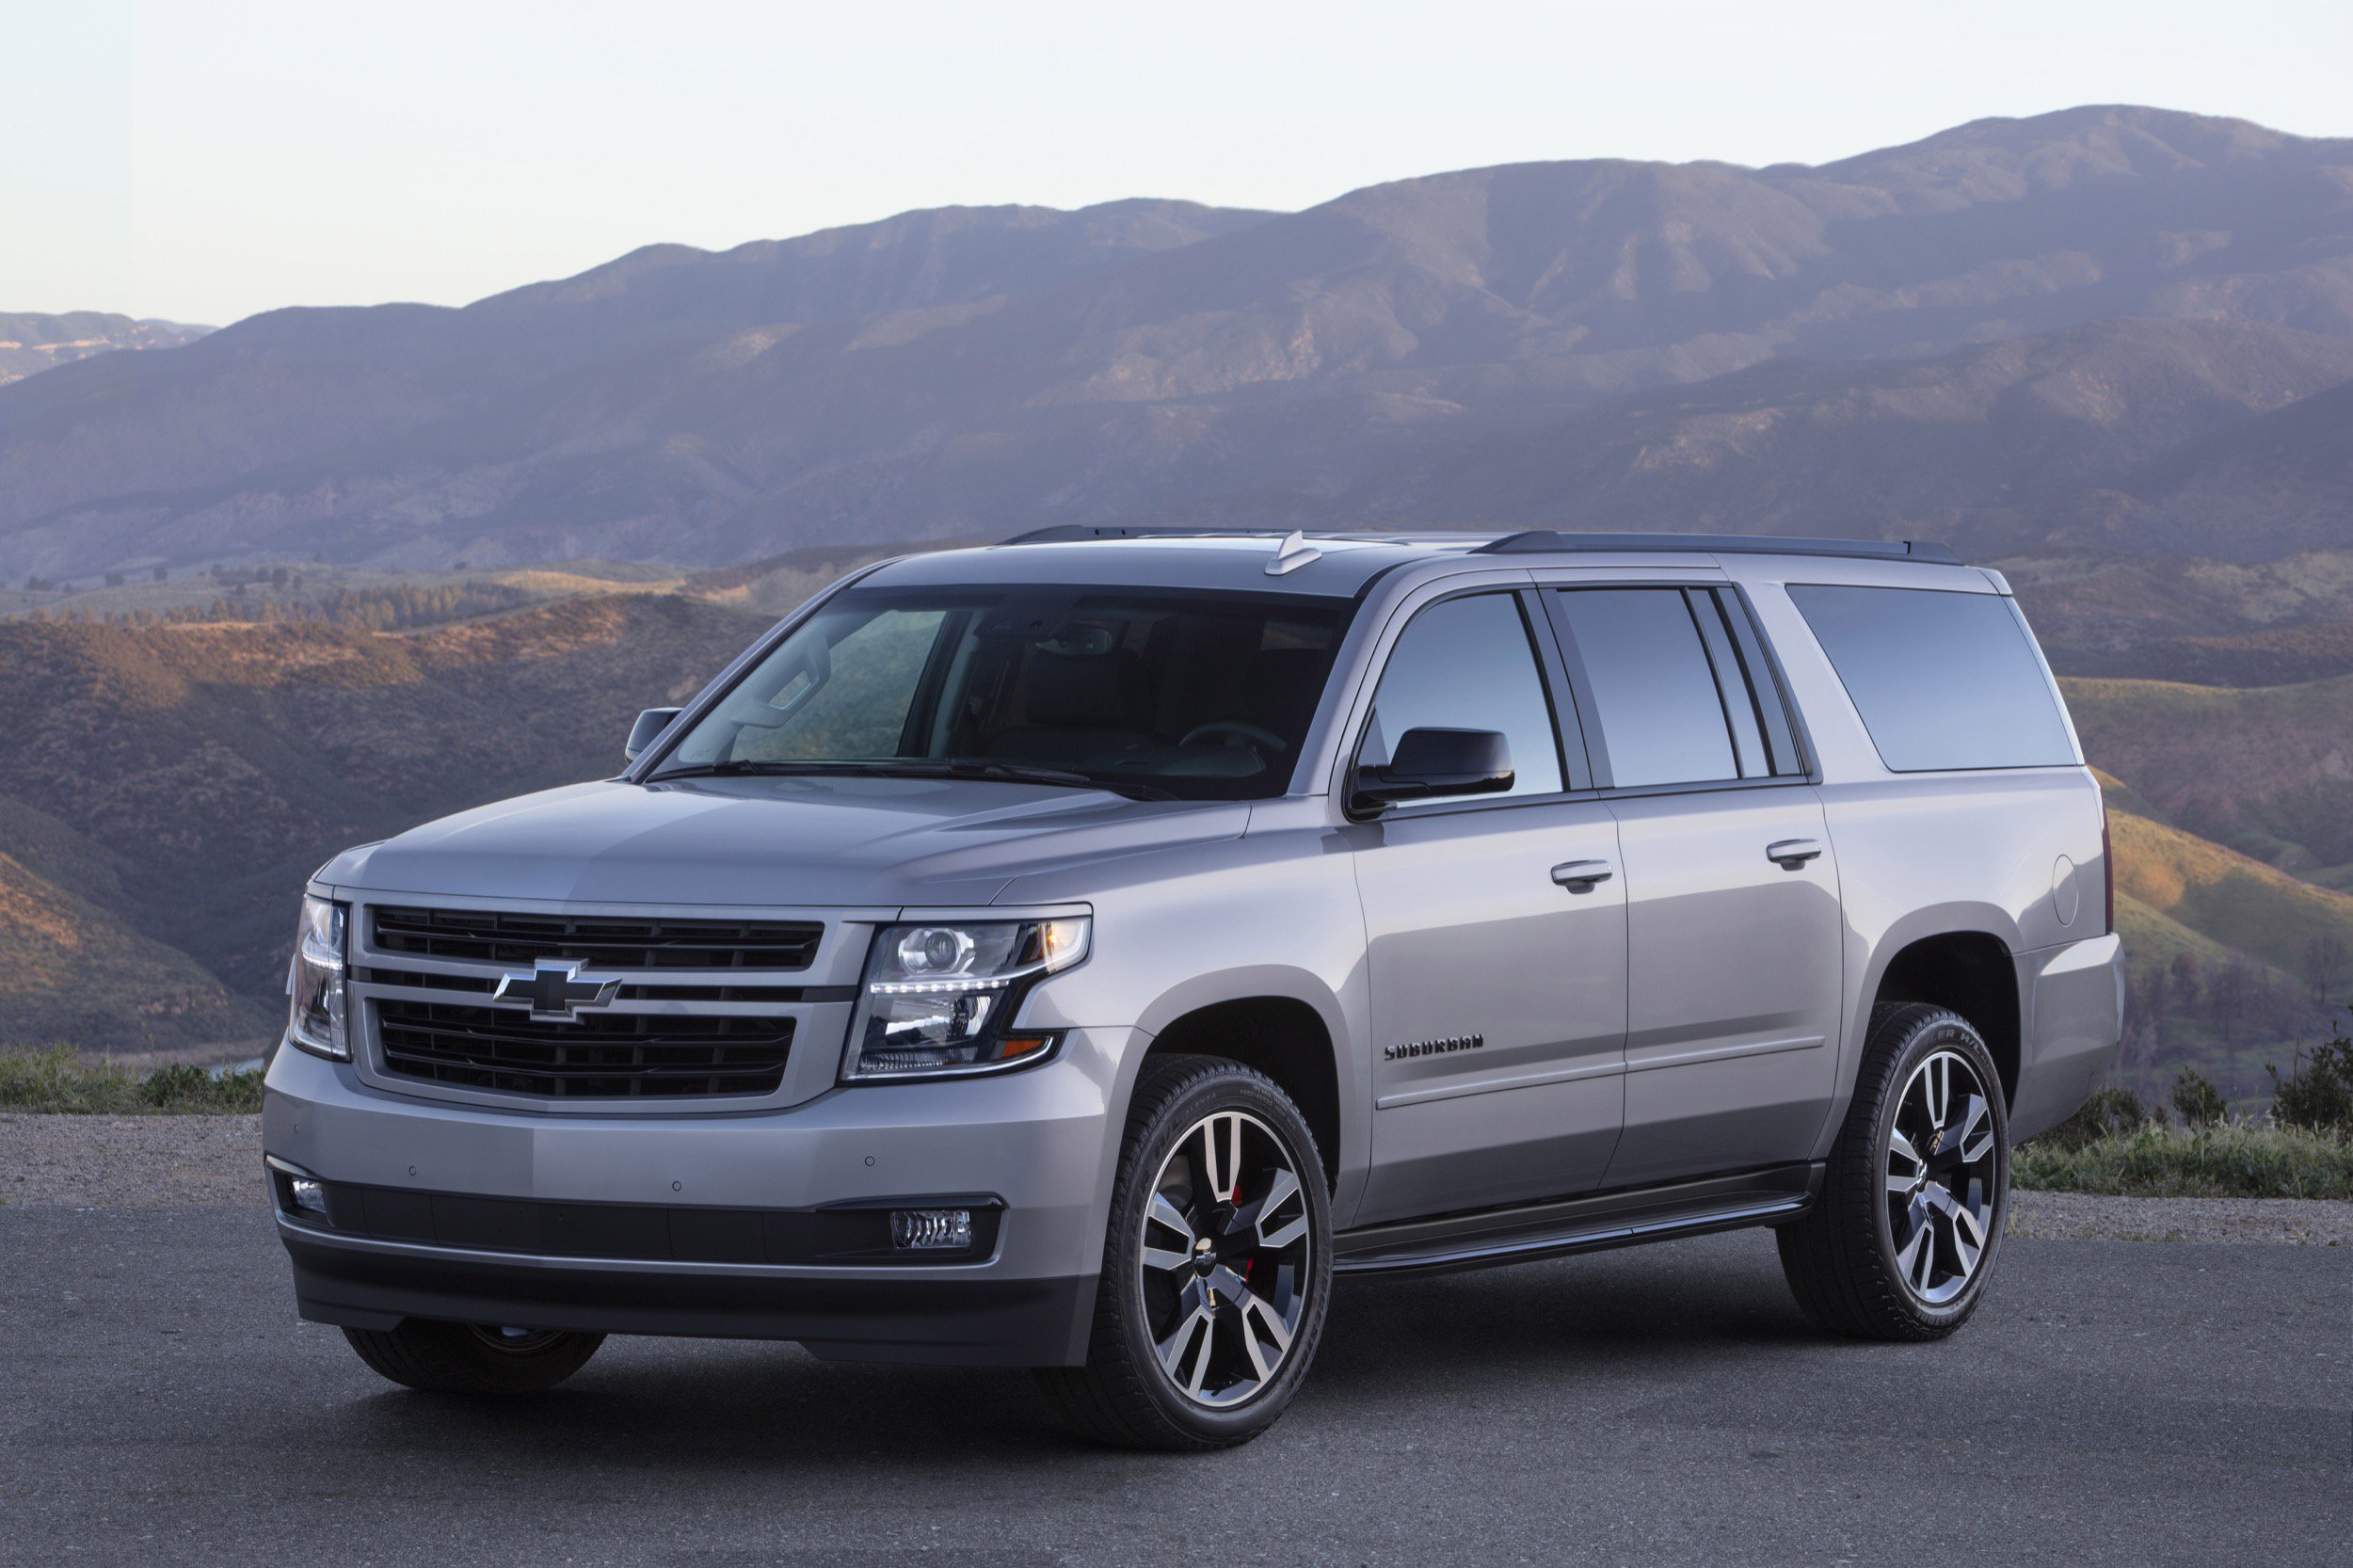 72 A 2020 Chevrolet Suburban First Drive